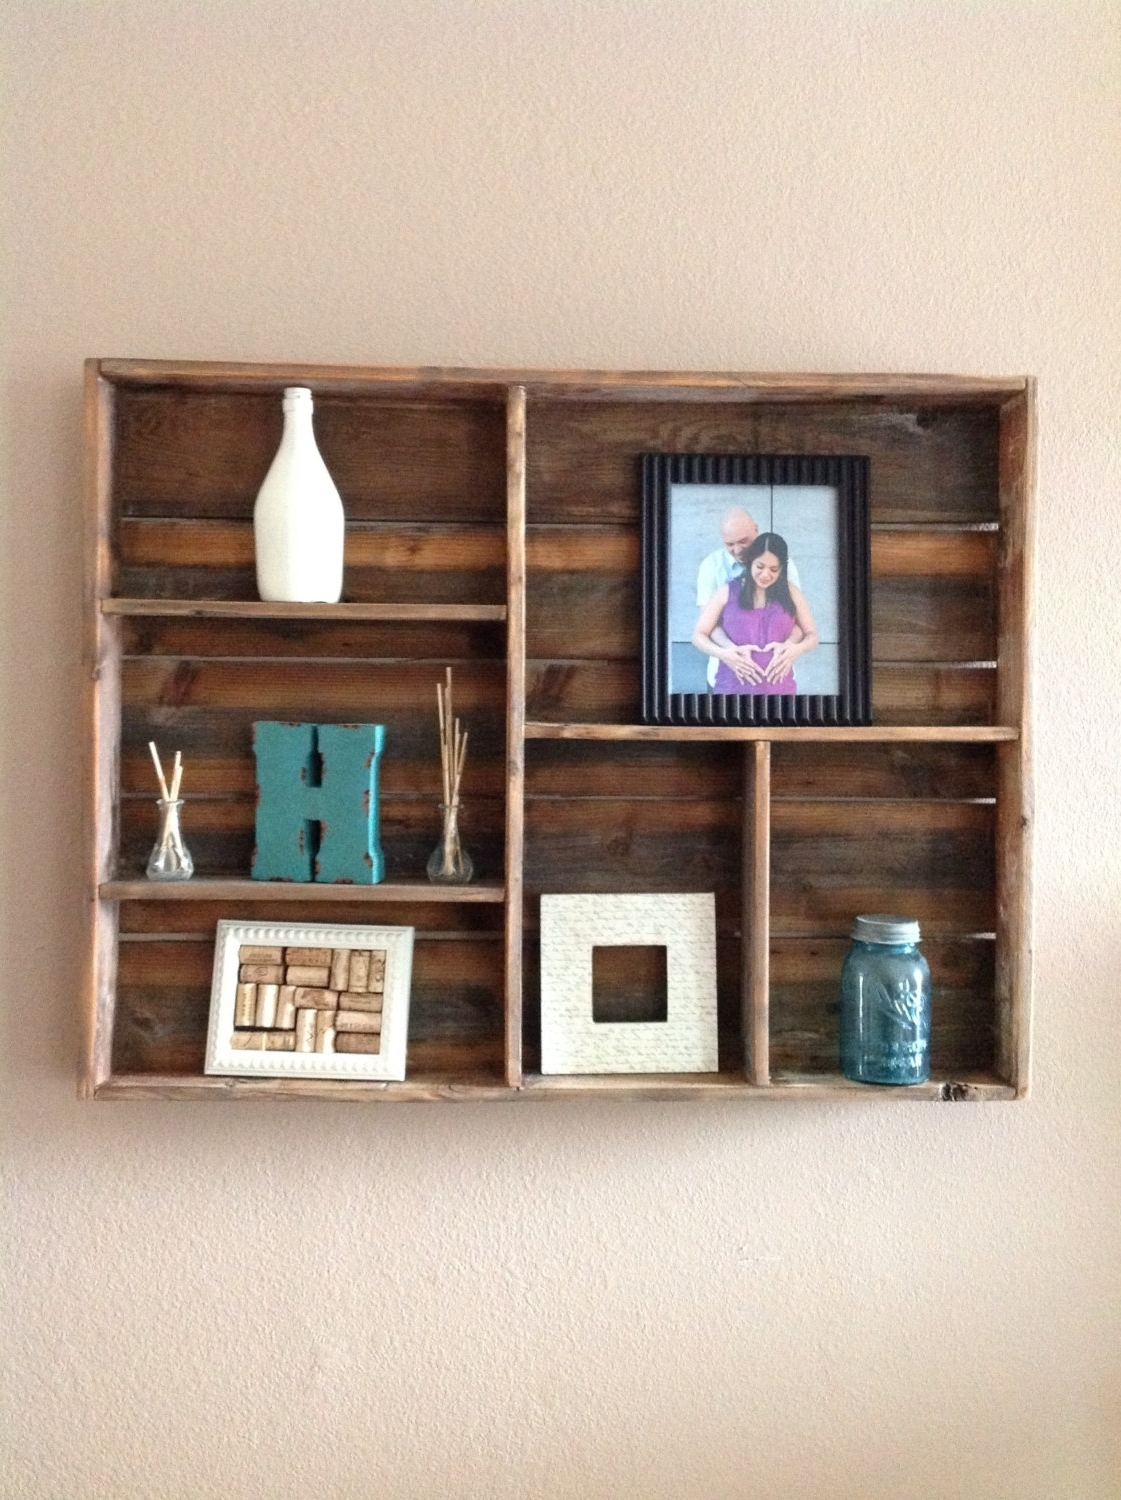 Recent Garage Shelving Then Transparent Glasses Along With Walls Bathroom With Wooden Wall Shelves (View 9 of 15)